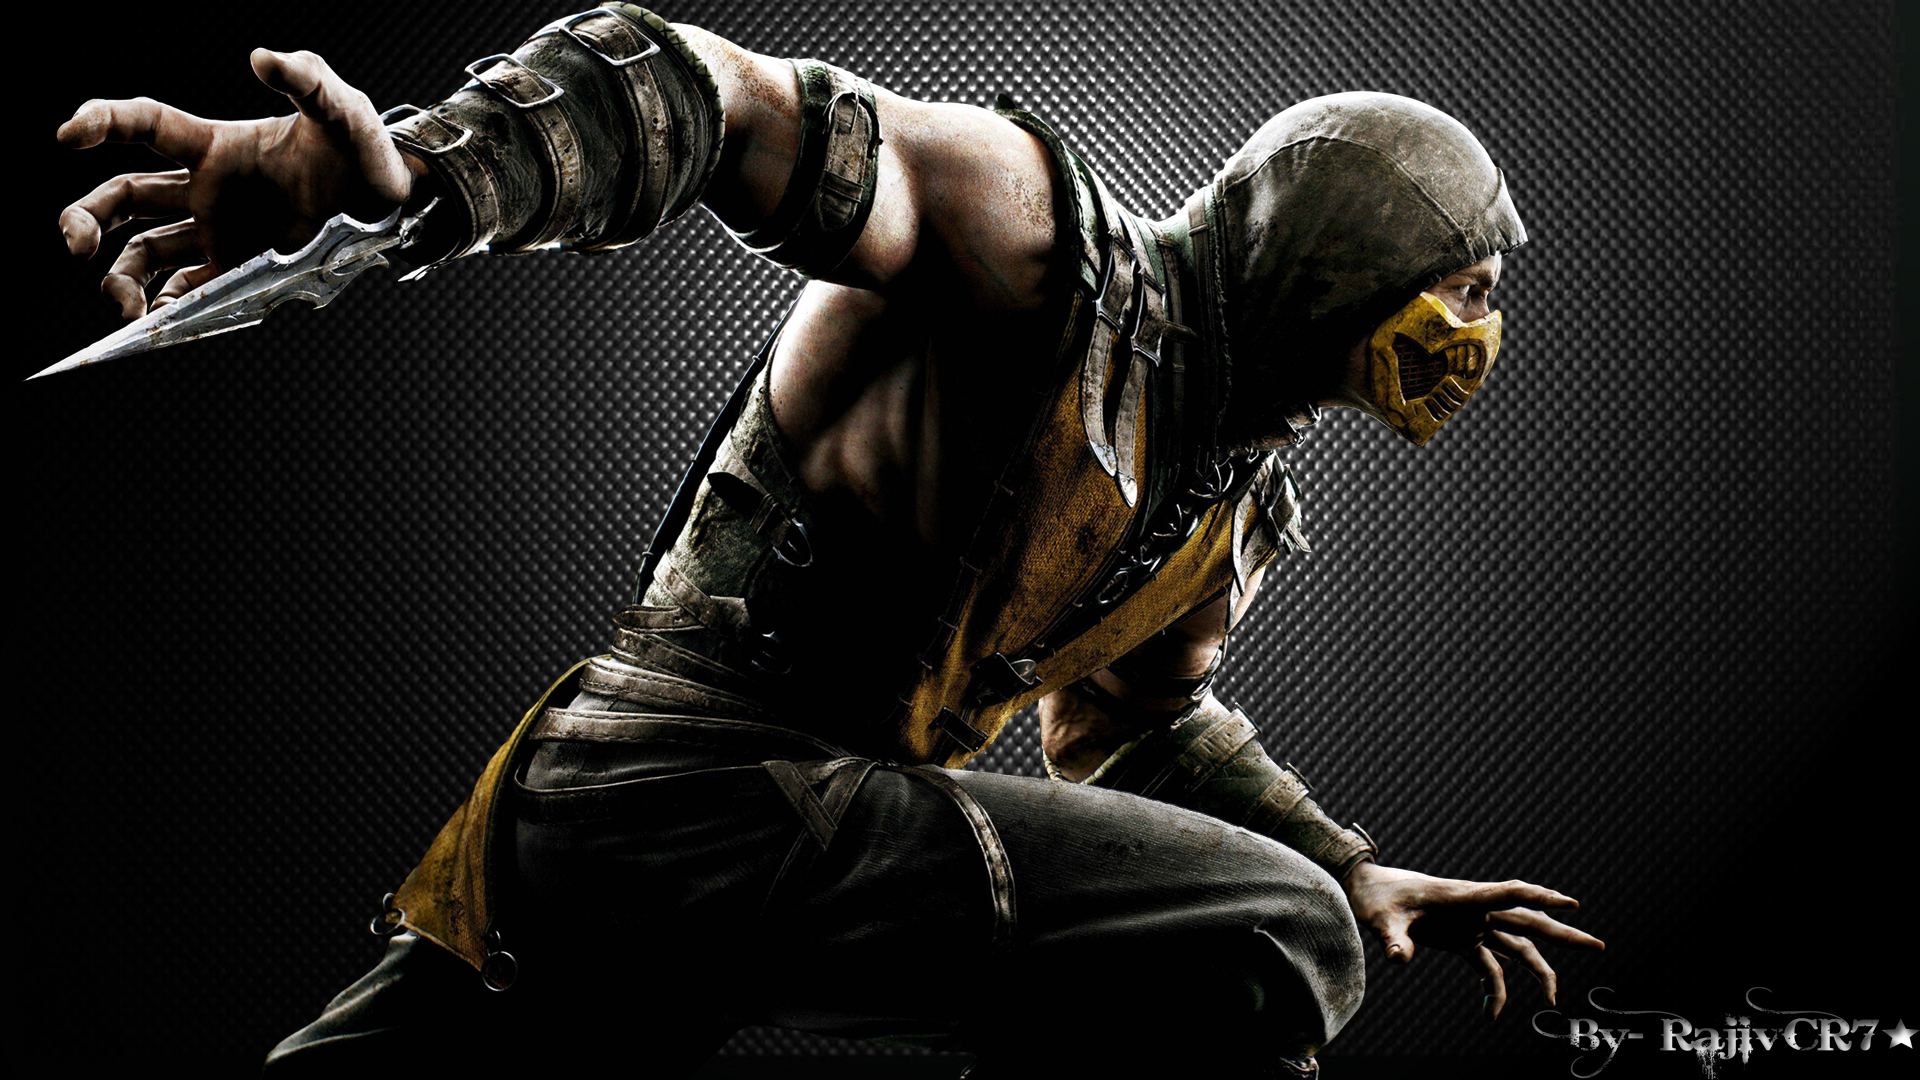 Mortal kombat 10 gameplay 1080p hd e3 2014   youtube mkiceandfire 1920x1080